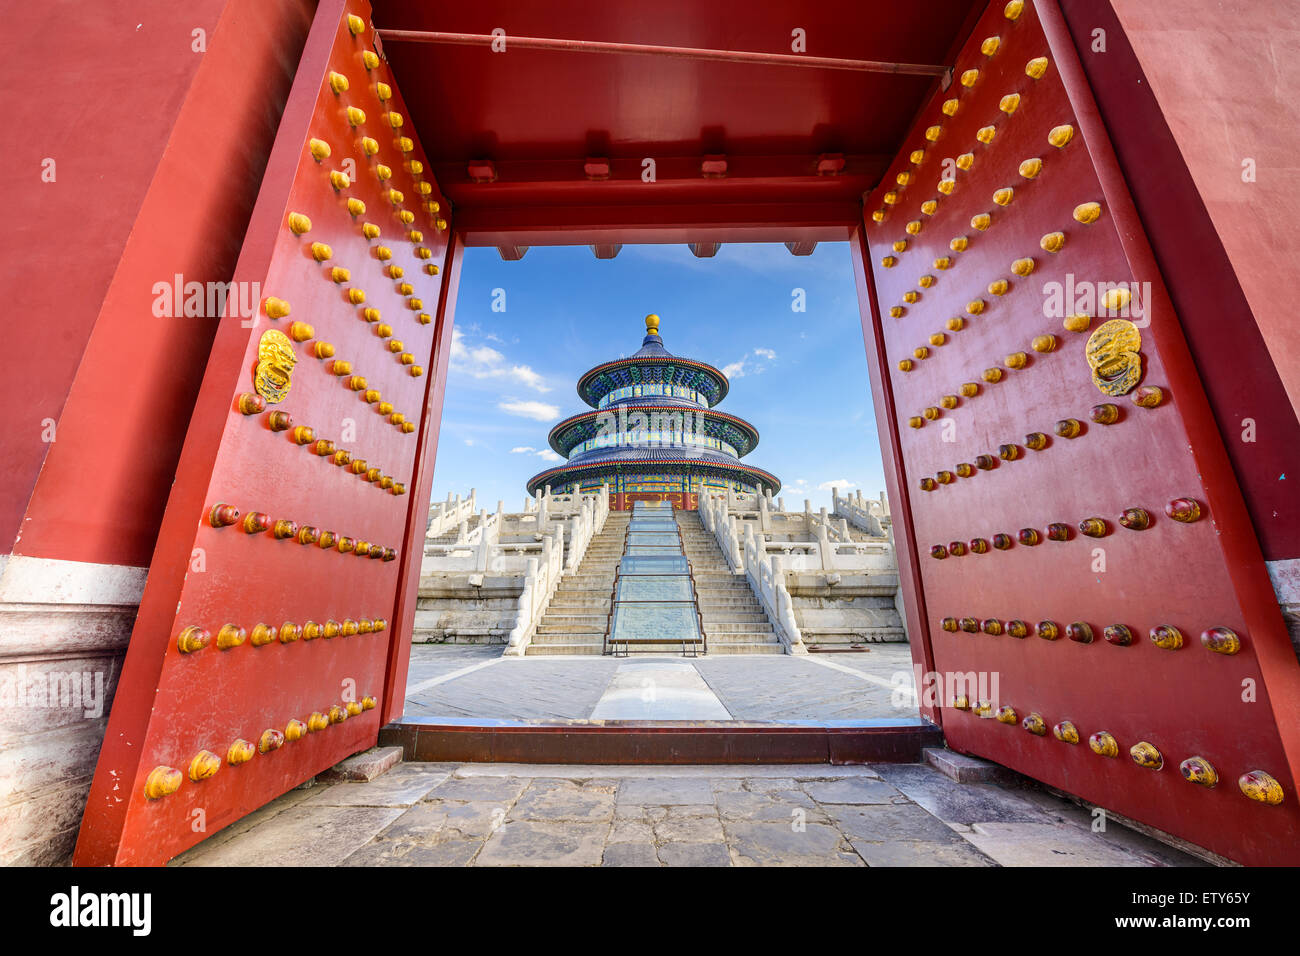 Beijing, China at the Temple of Heaven. - Stock Image